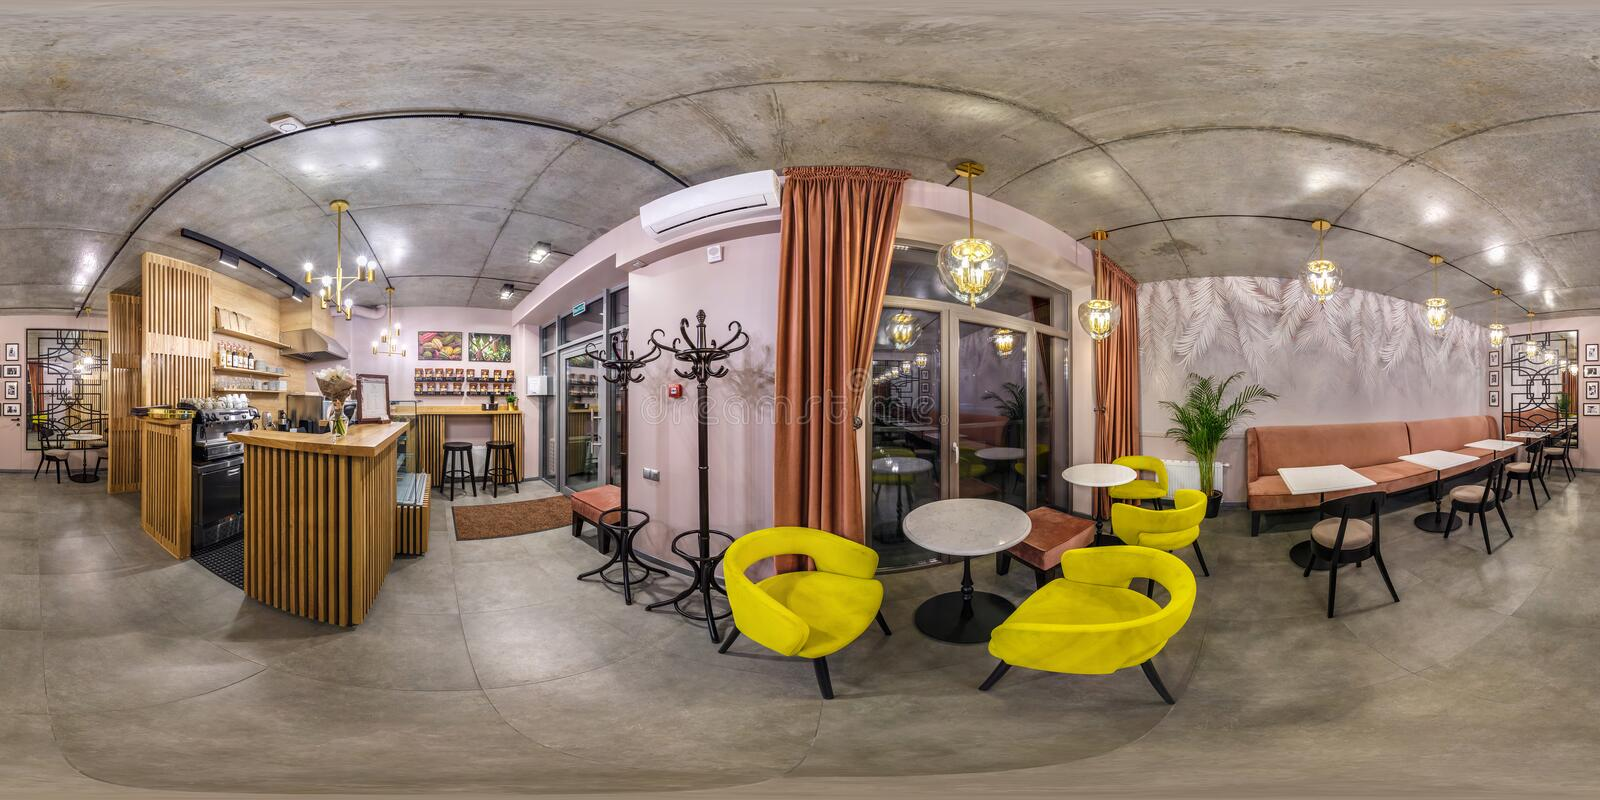 GRODNO, BELARUS - MAY 2019:  seamless spherical hdri panorama 360 degrees angle inside interior of stylish vintage cafe coffee bar royalty free stock photography